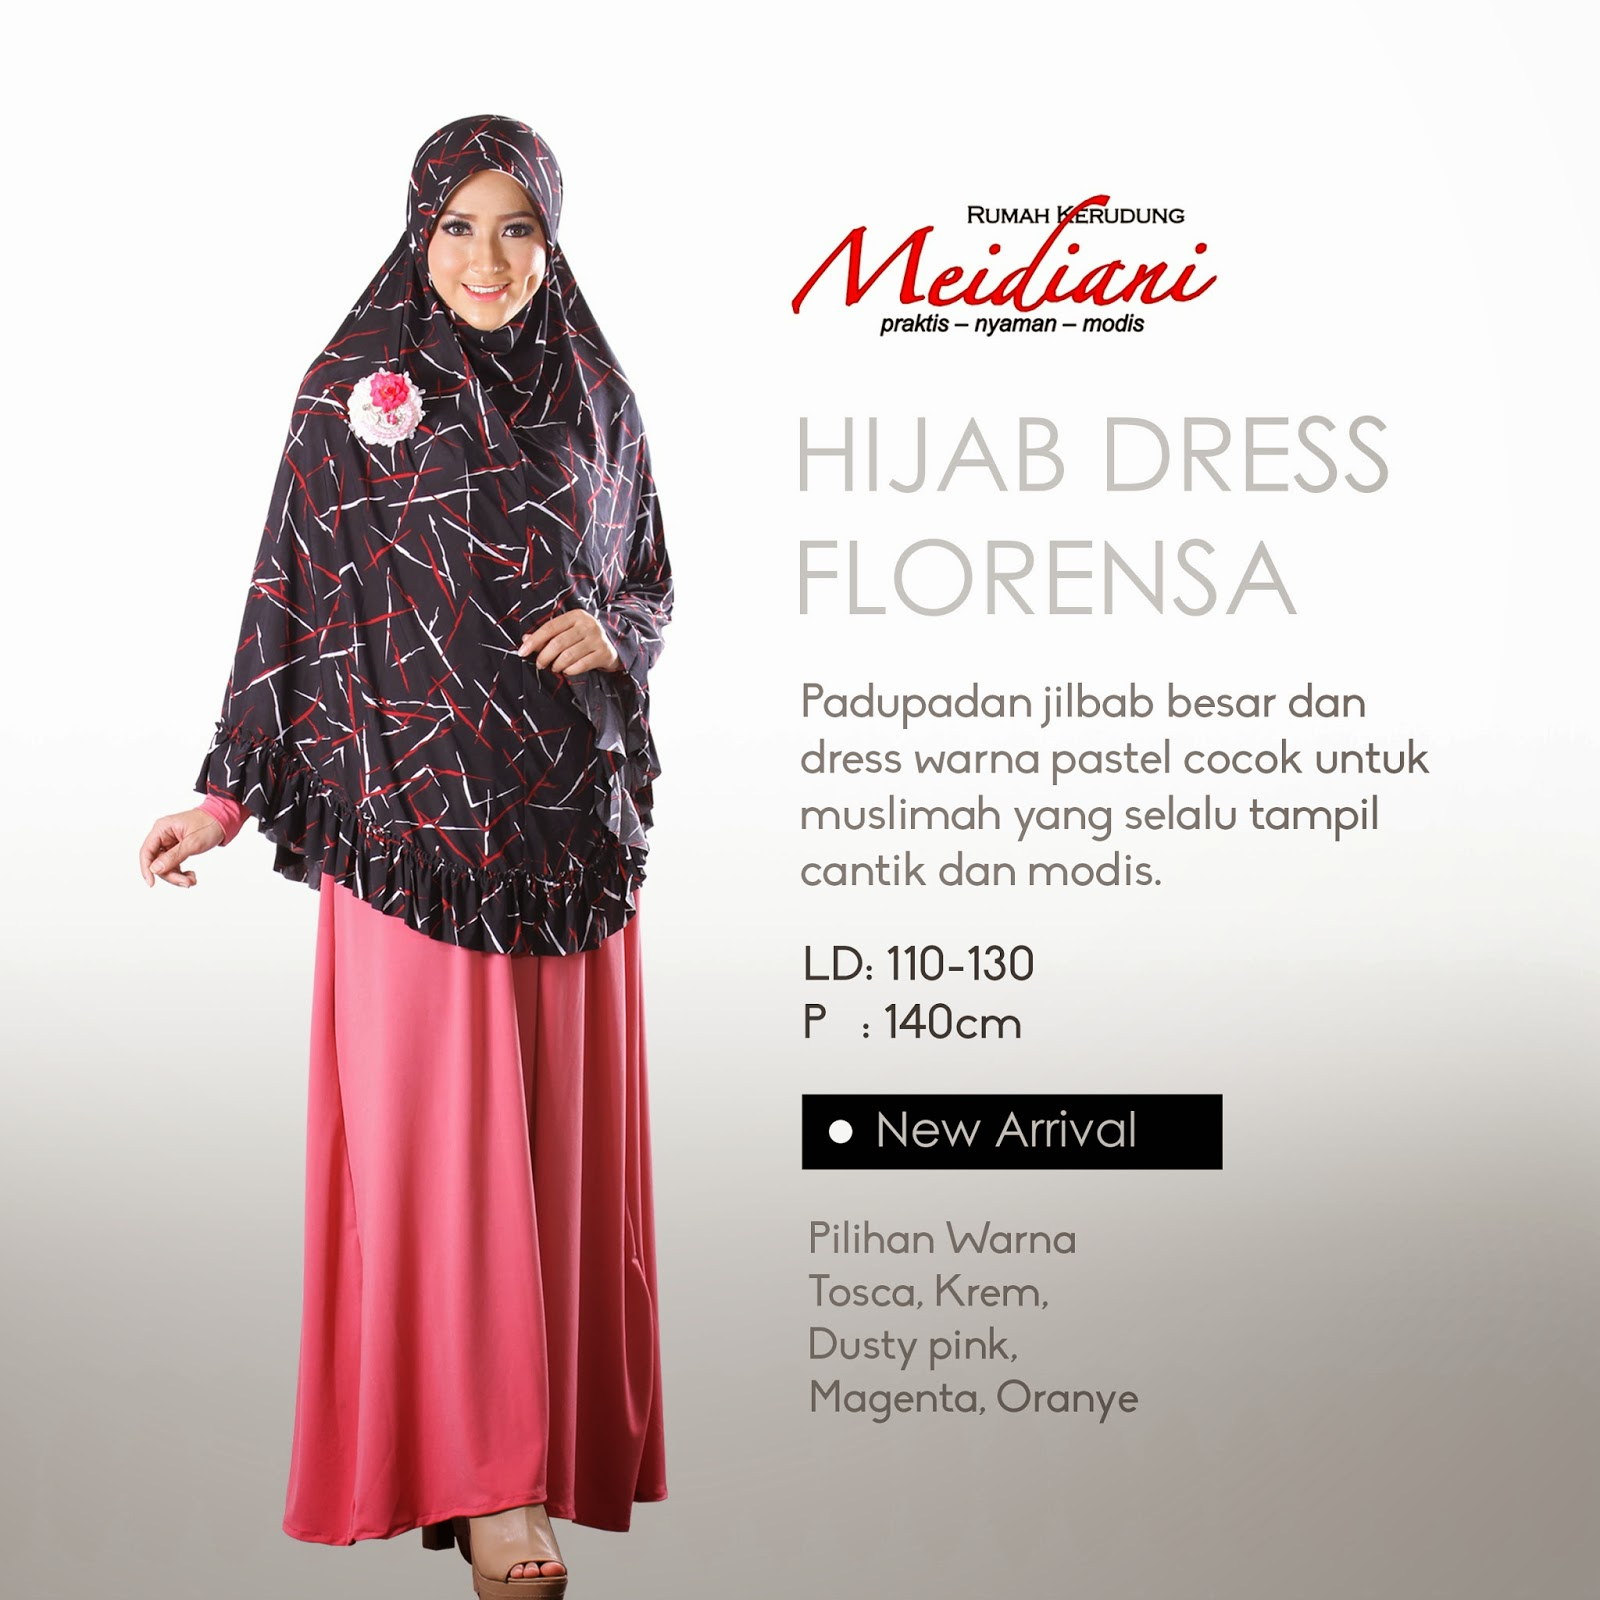 Hijab Dress Florensa